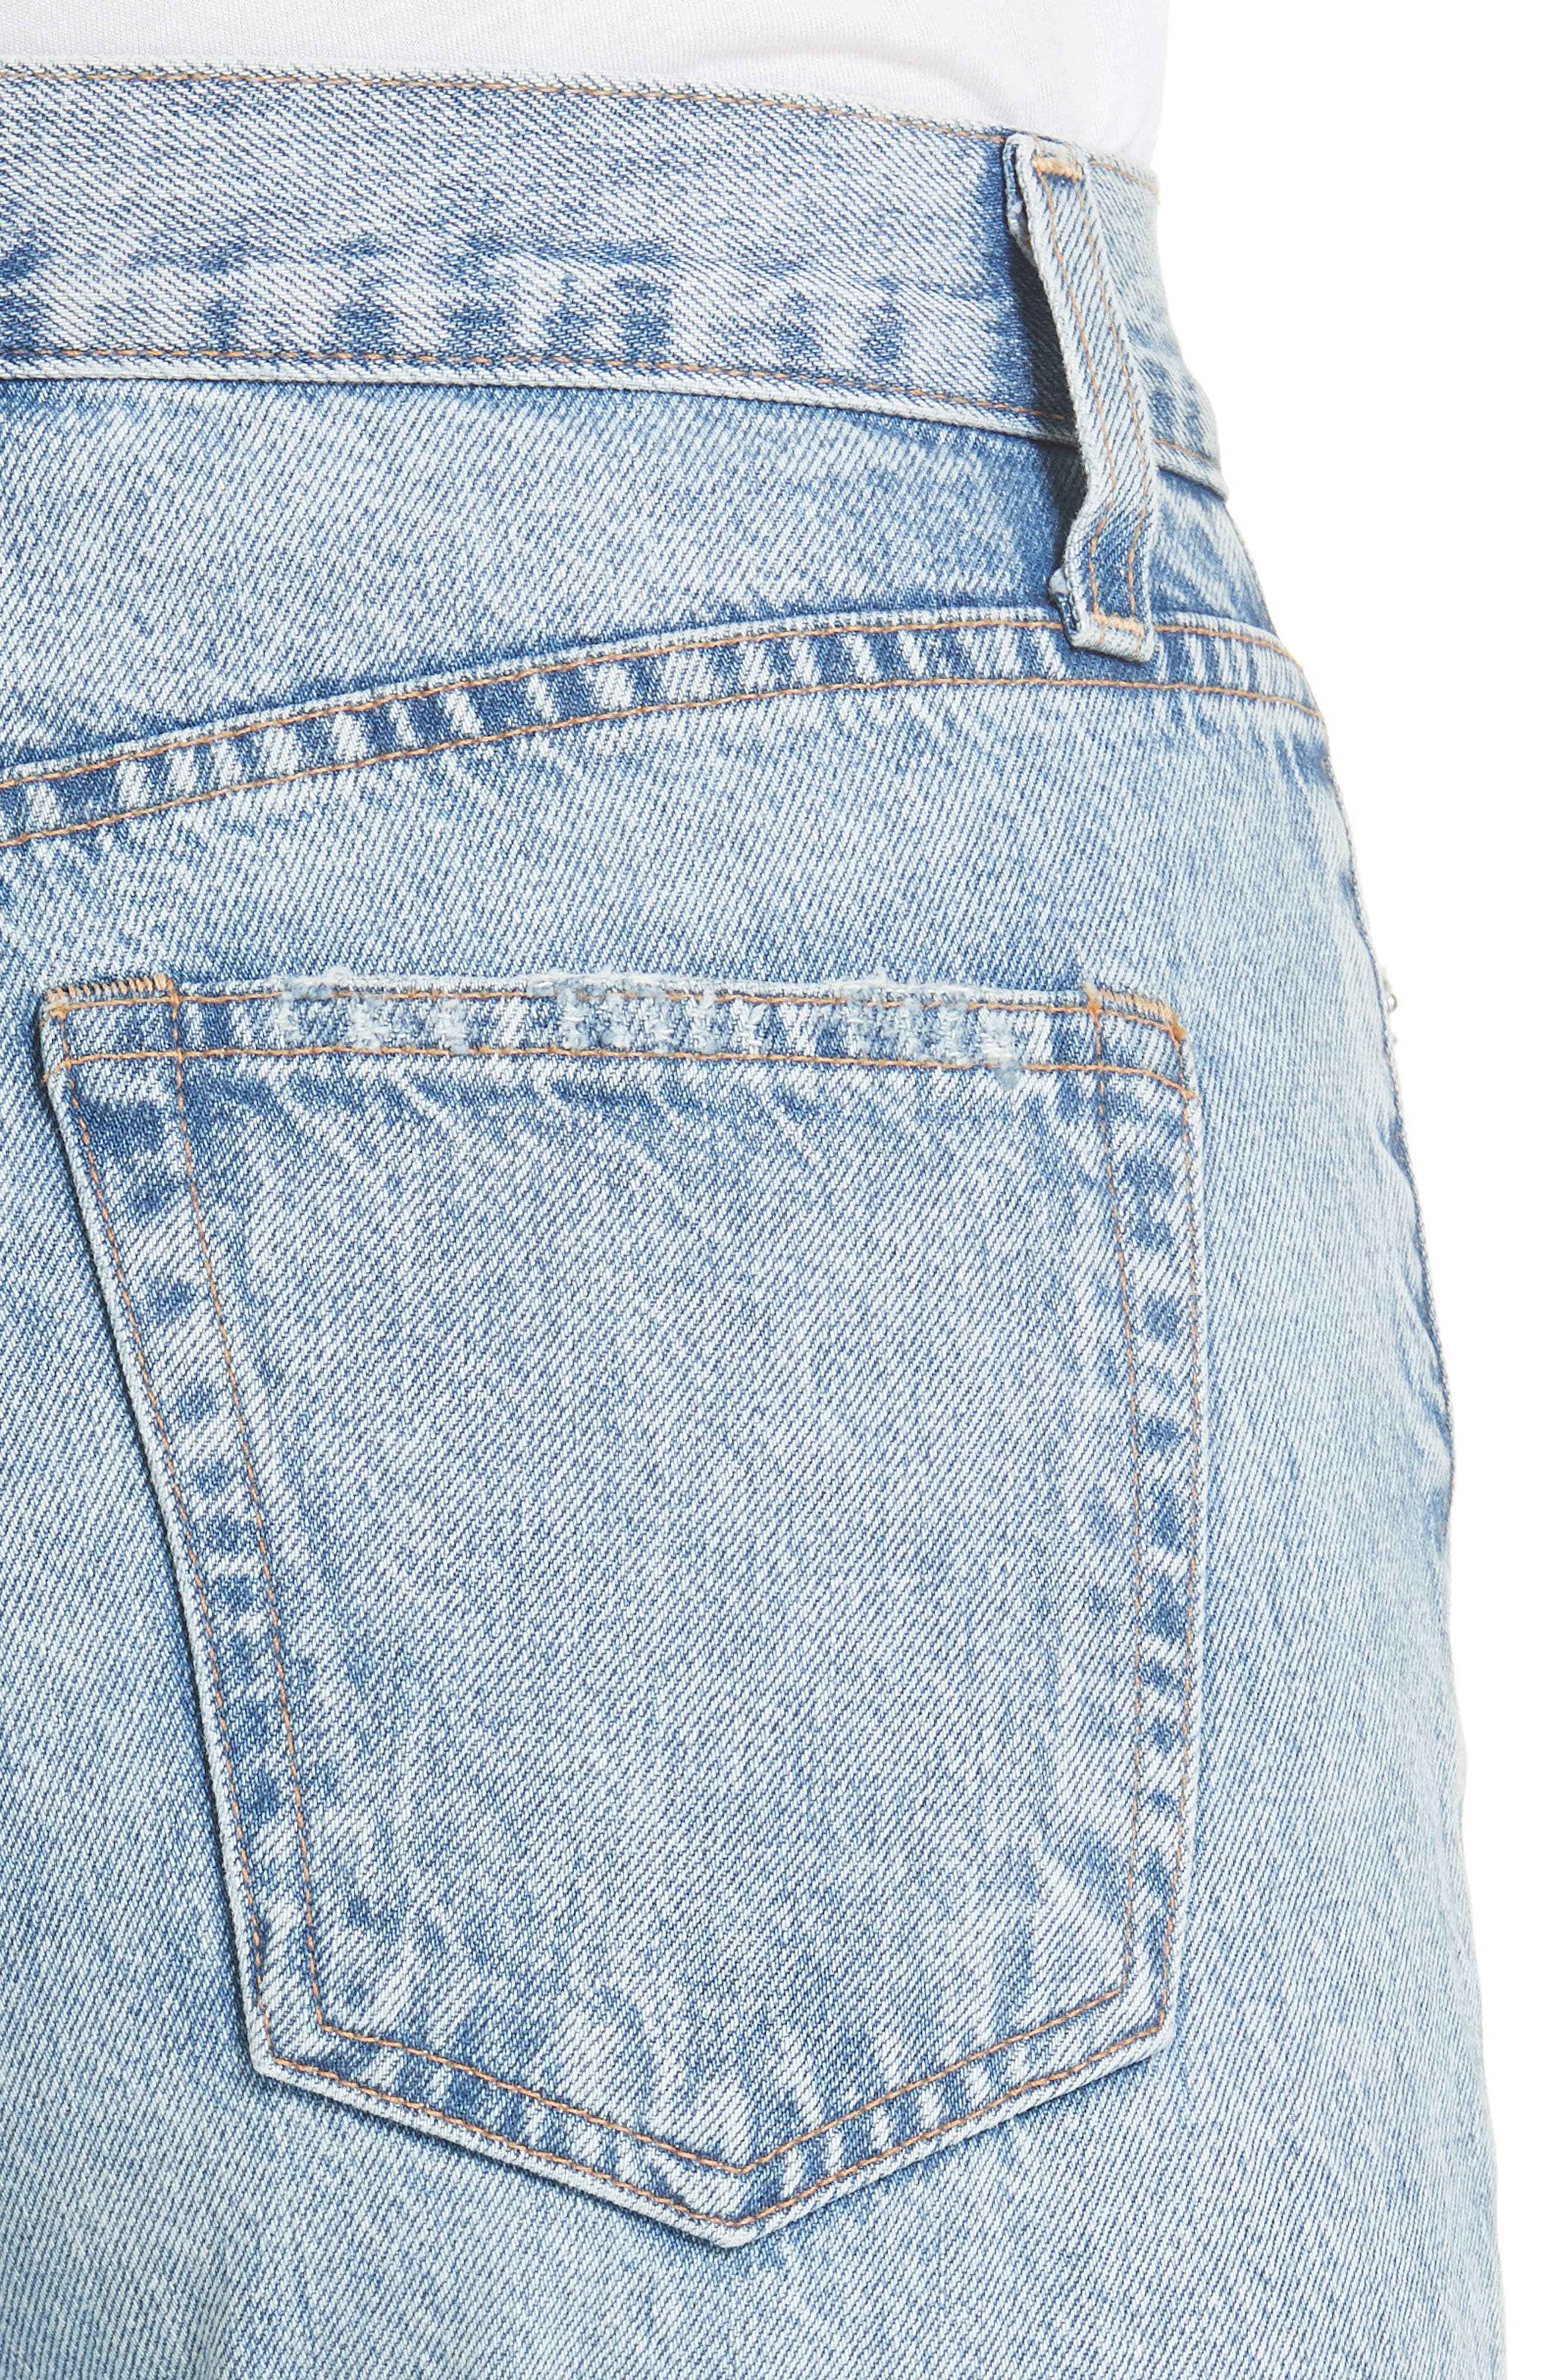 AO.LA Amazing Good Luck Slim Girlfriend Jeans,                             Alternate thumbnail 4, color,                             Out Of Sight/ Gold